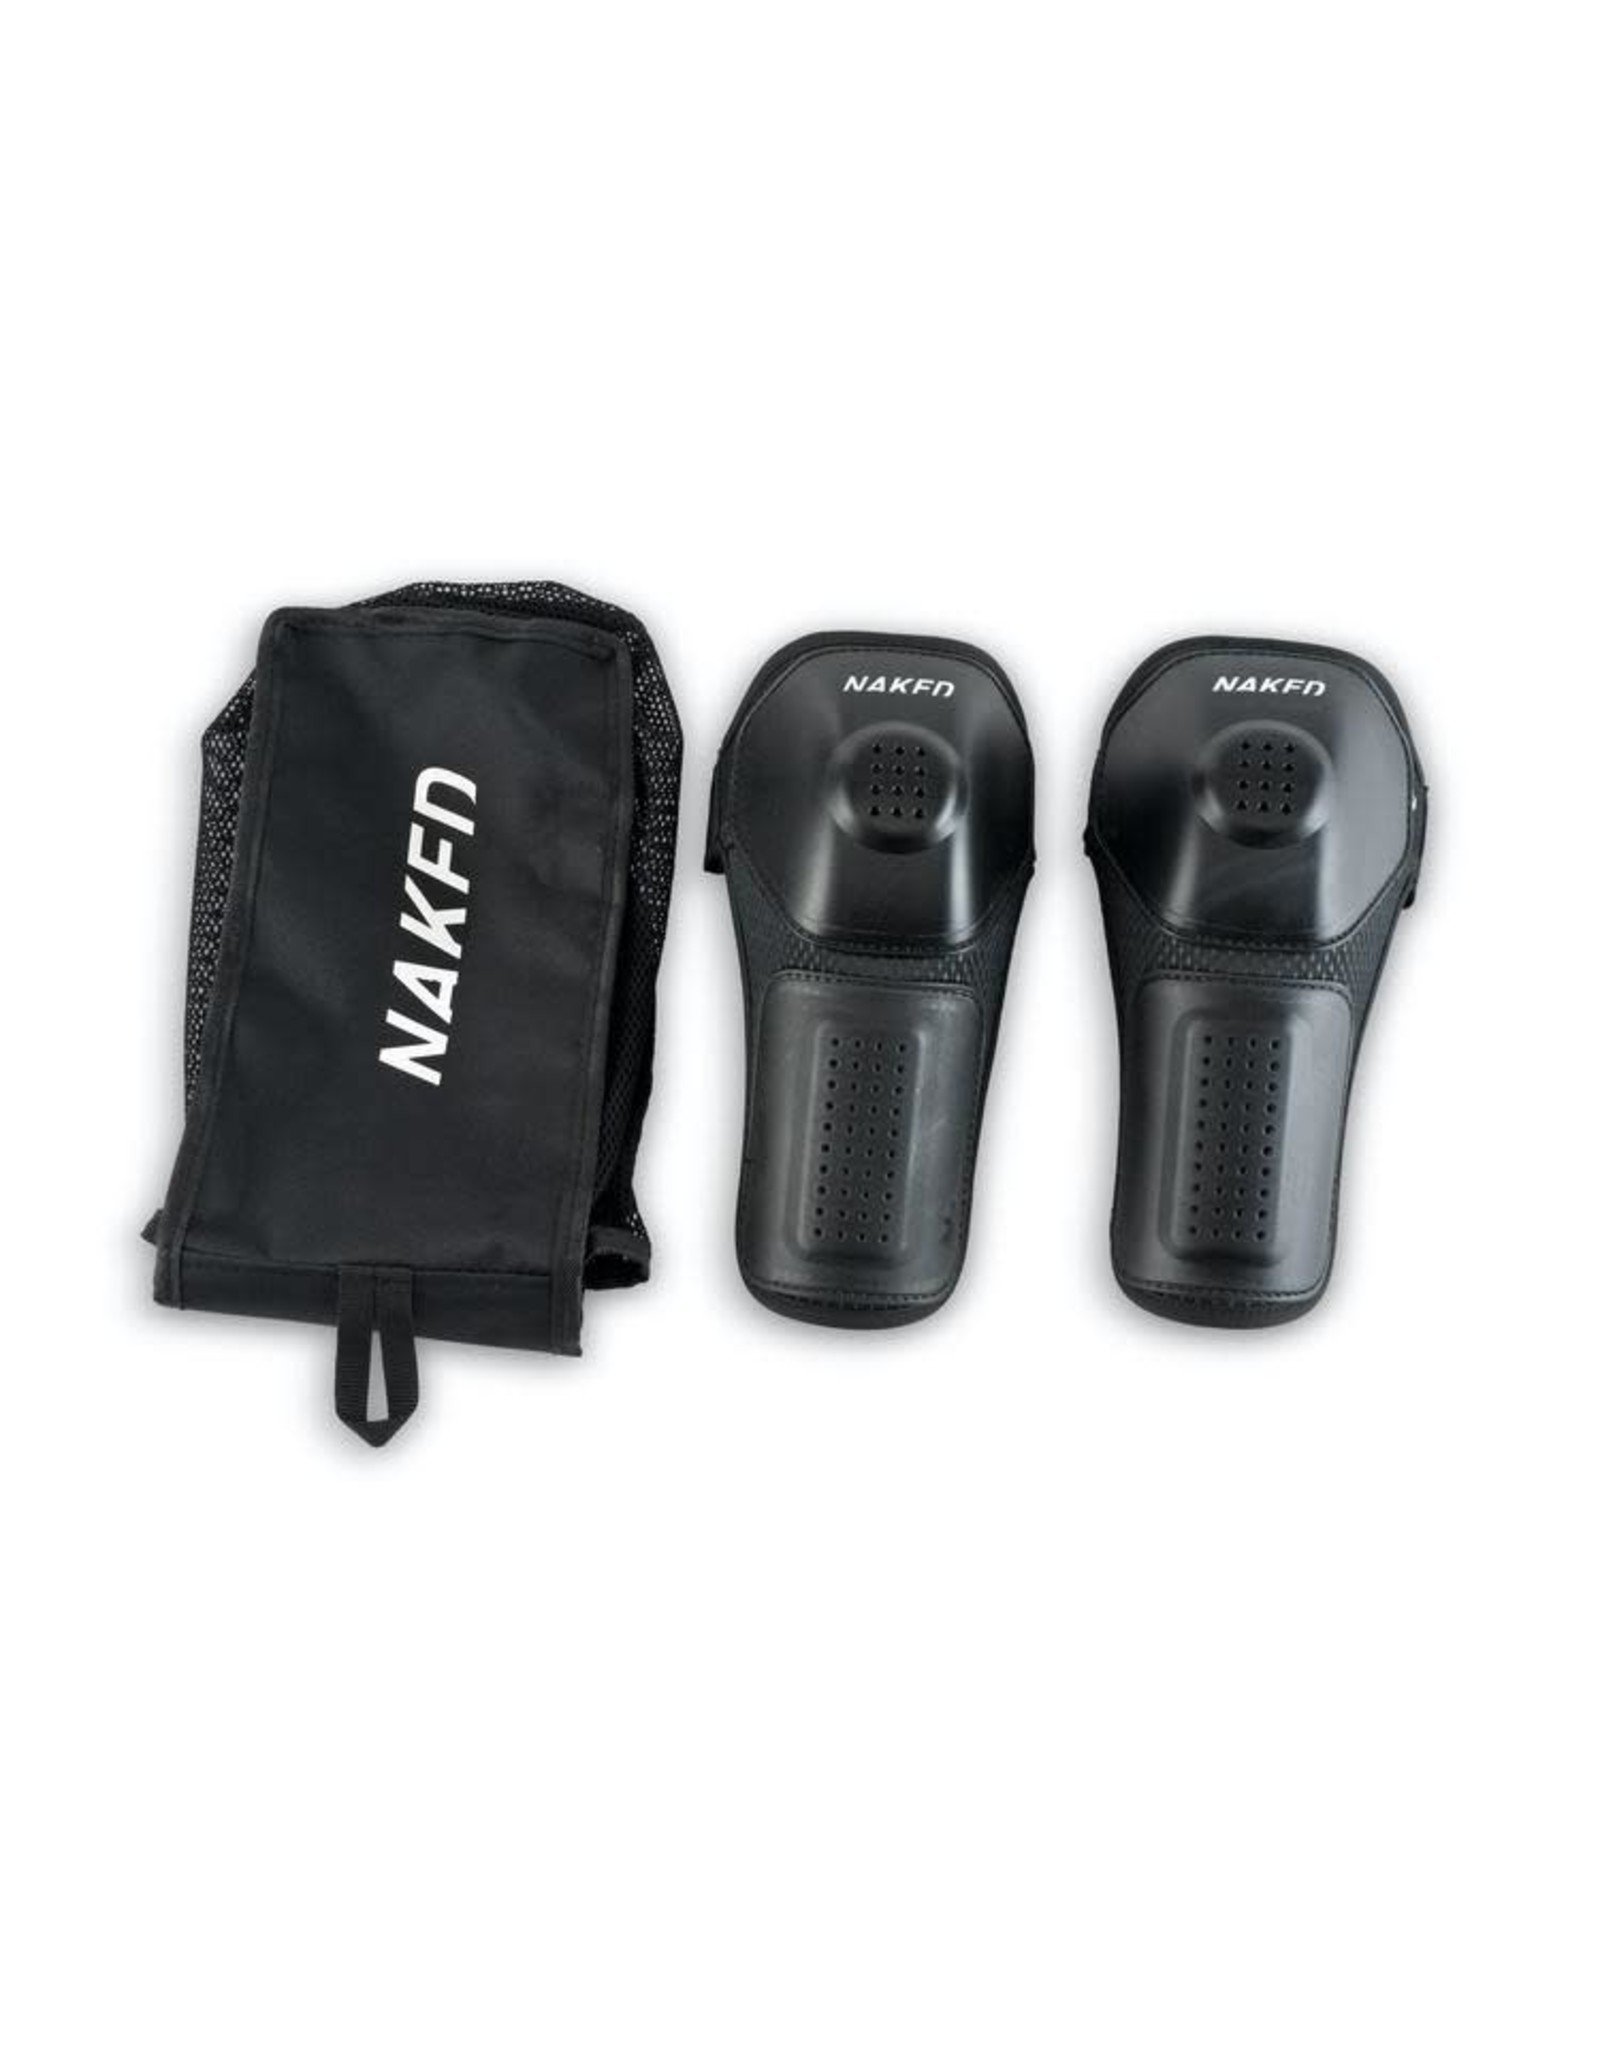 NAKED NAKED PC KNEE GUARD - ONE SIZE